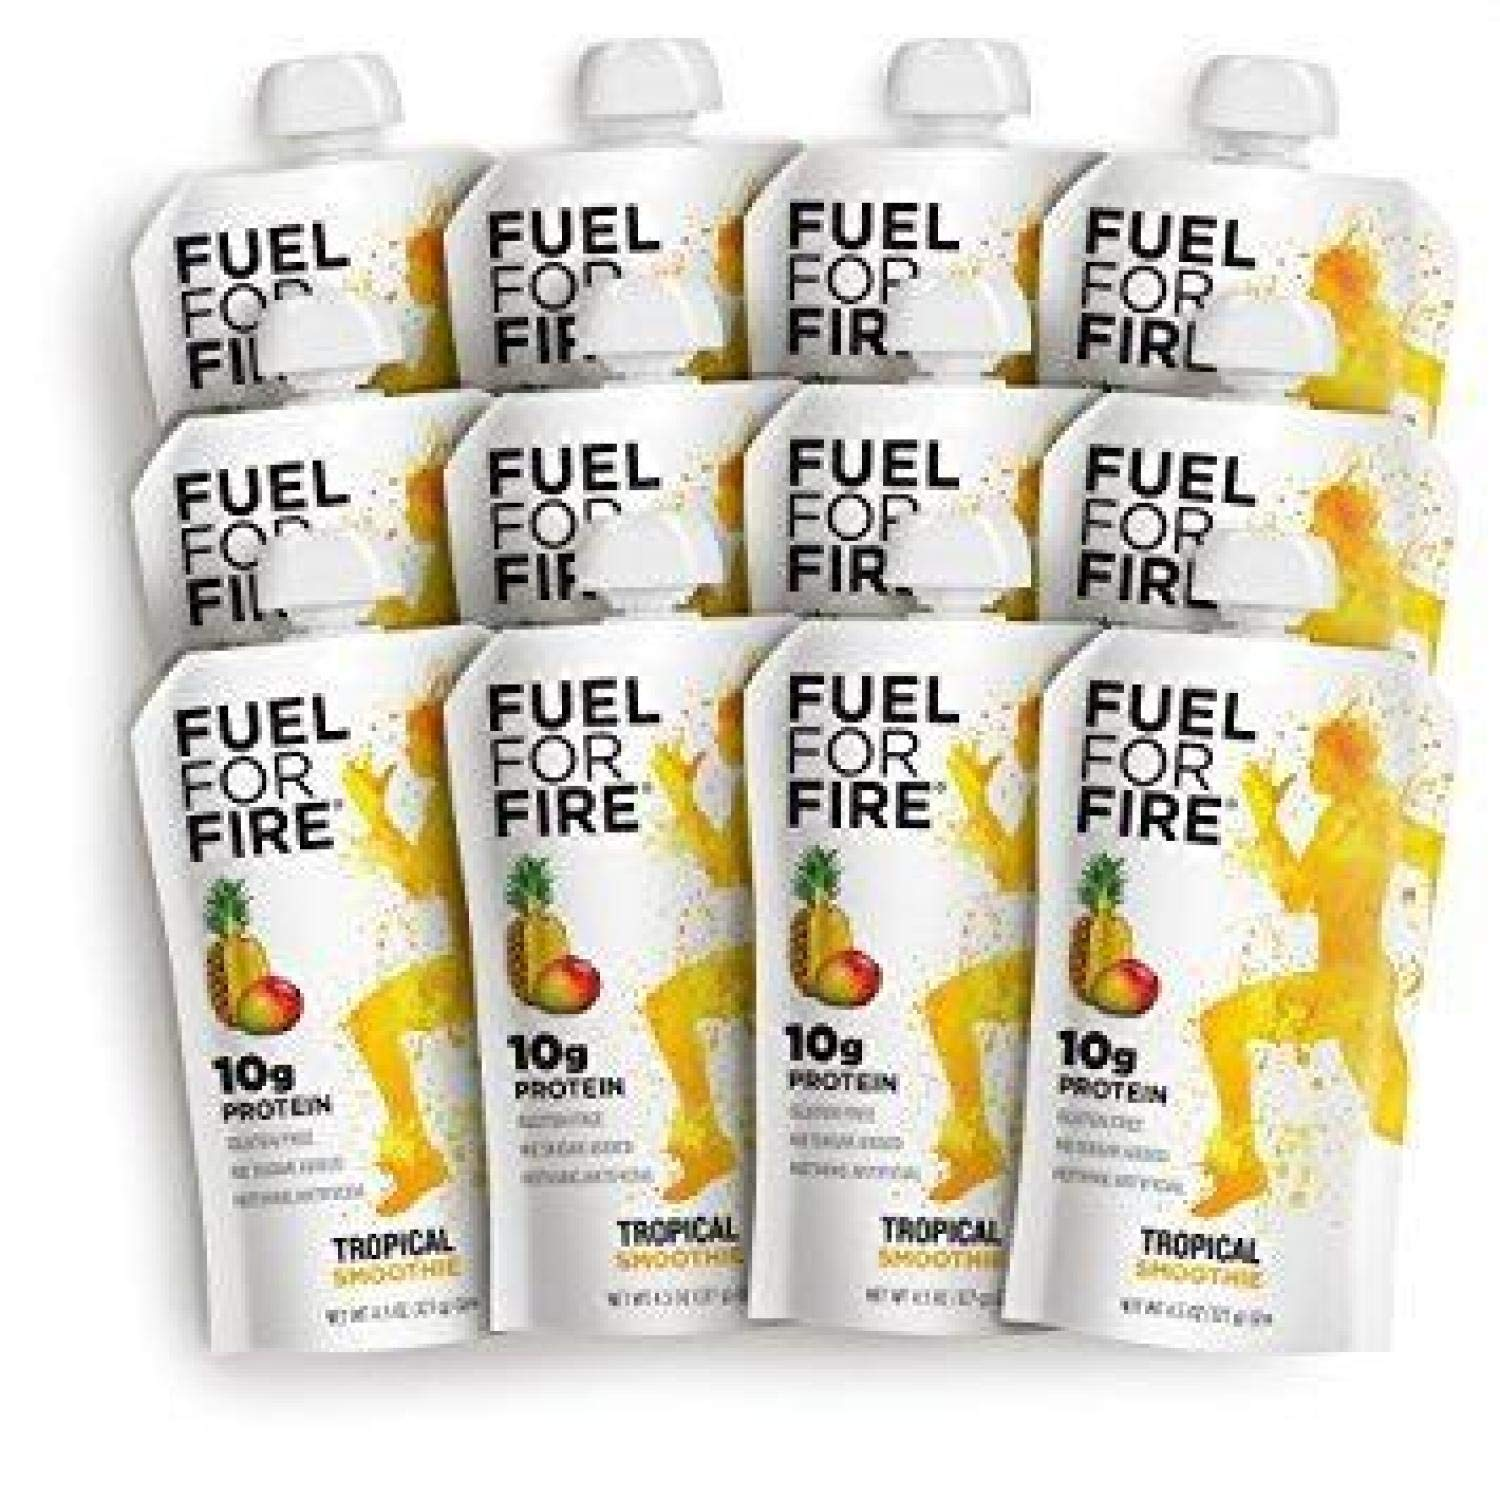 Fuel For Fire - Tropical (12 Pack) Fruit & Protein Smoothie Squeeze Pouch | Perfect for Workouts, Kids, Snacking - Gluten-Free, Soy-Free, Kosher (4.5 ounce pouches) by FUEL FOR FIRE